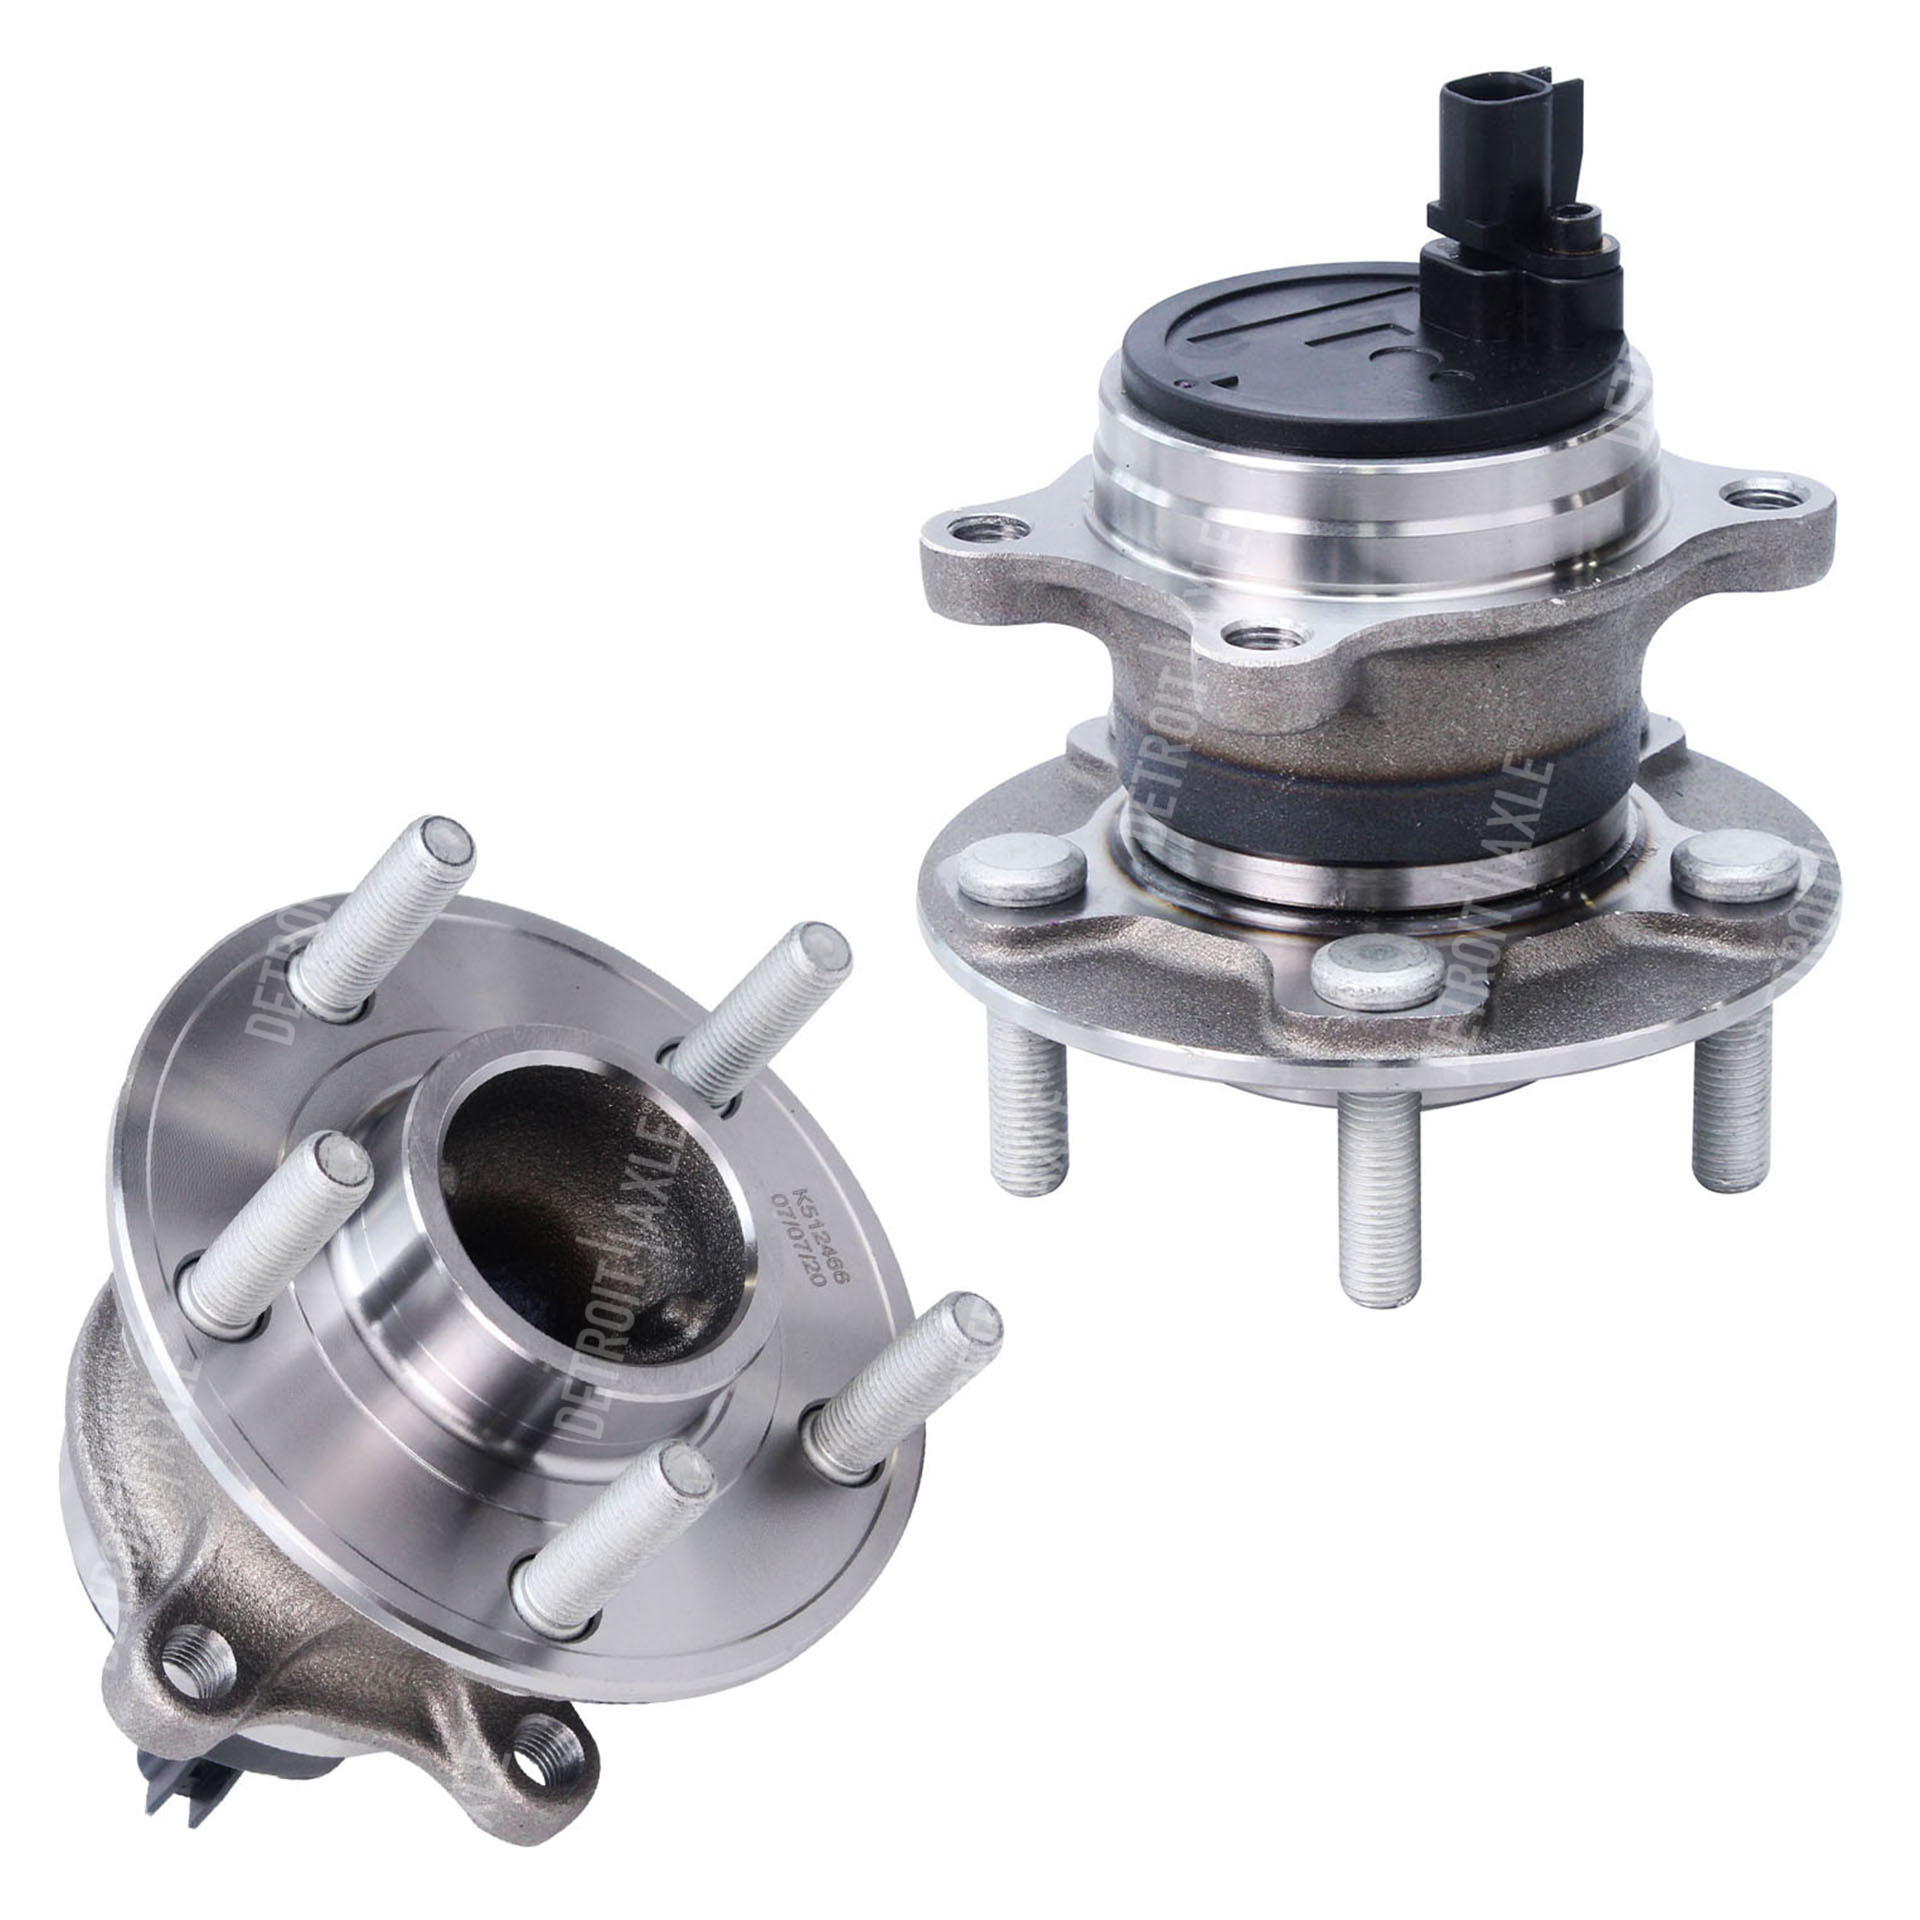 2PC Rear Wheel Bearing Hub Kit for Models Without Active Park Assist